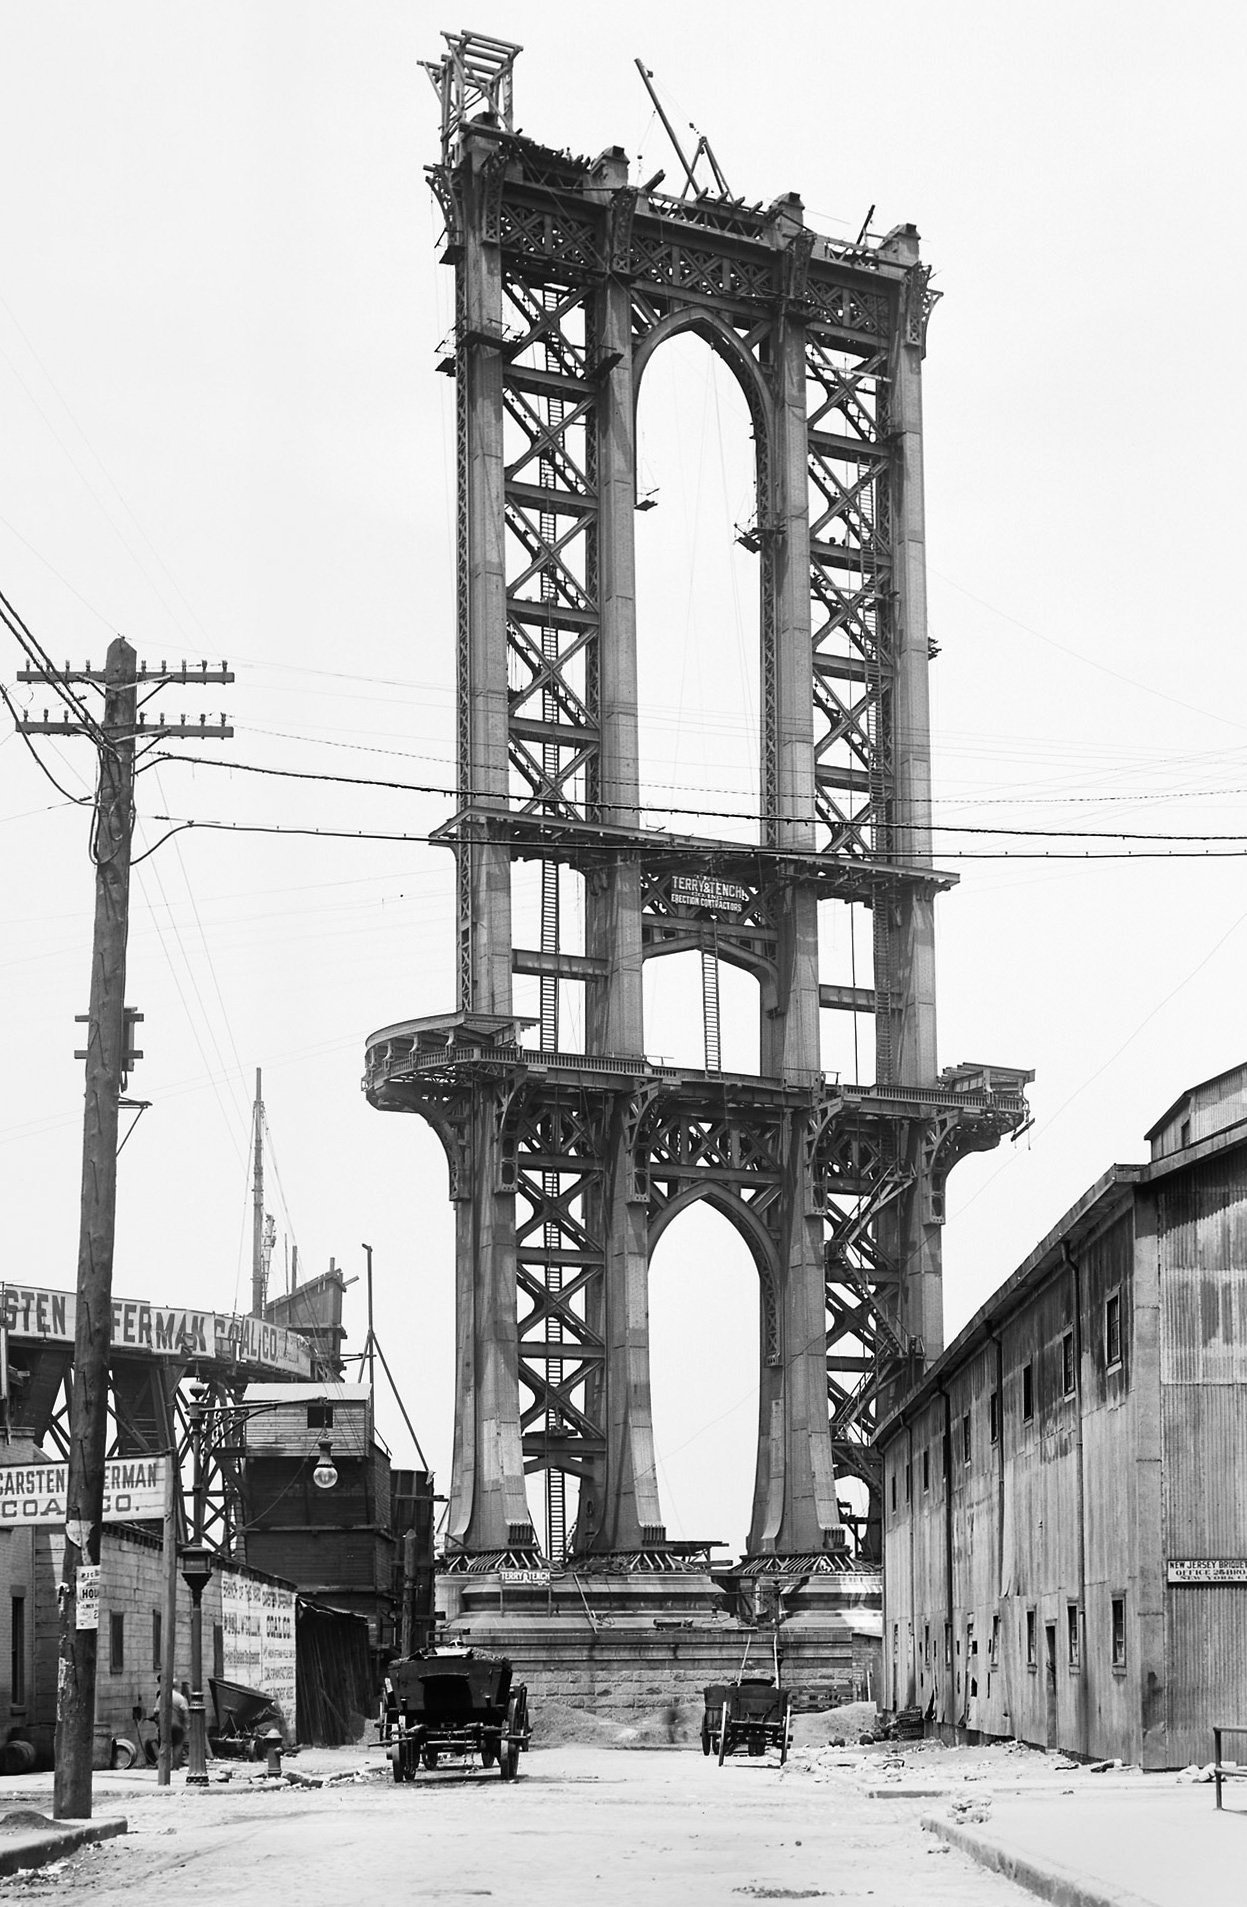 Open Gallery : postez les plus belles images que vous croisez... - Page 17 Manhattan-Bridge-construction-Washington-Street-in-New-York-on-June-5-1908-Eugene-de-Salignac.